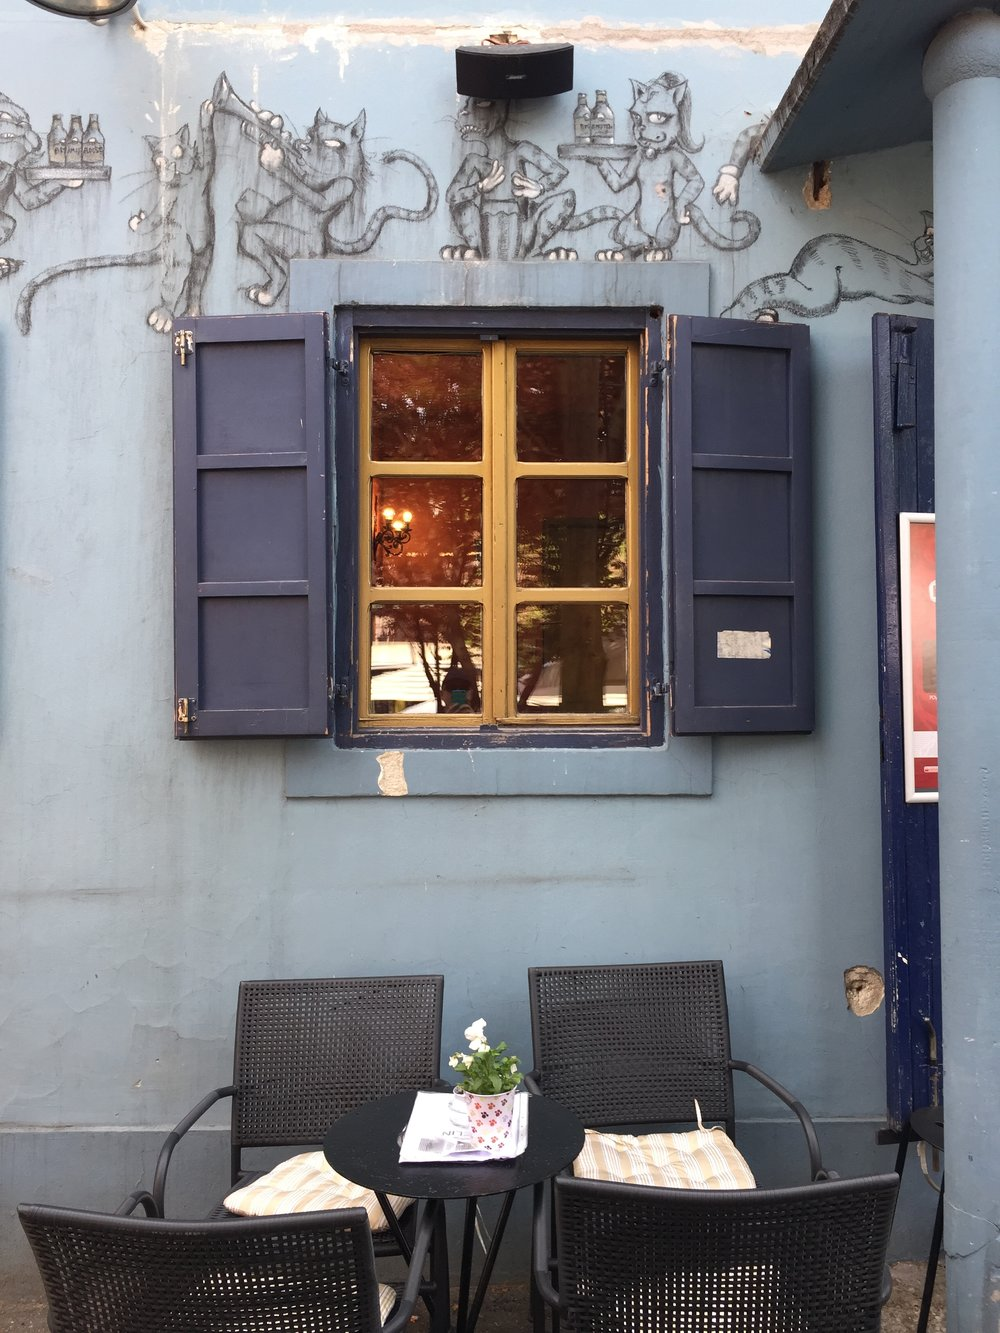 A blue cafe with cats — it reminded me of Bulgakov's  Master & Margarita ...